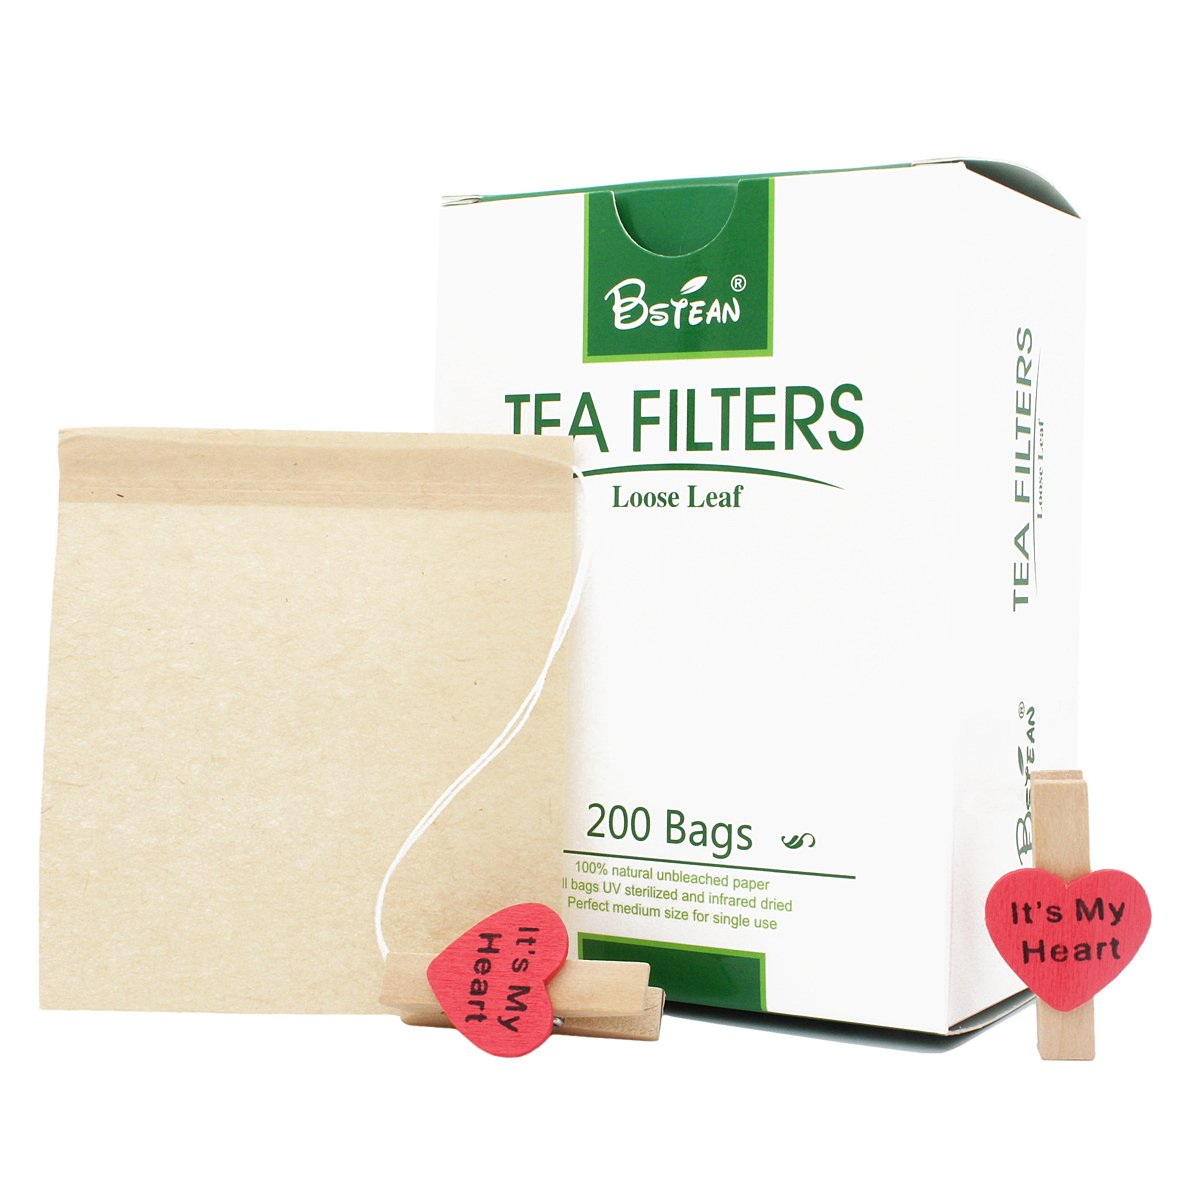 Bstean Tea Filter Bags Disposable Tea Infuser with Drawstring for Loose Leaf Tea with 100% Natural Unbleached Paper and 2 Free Clip (100 PCS x 2)